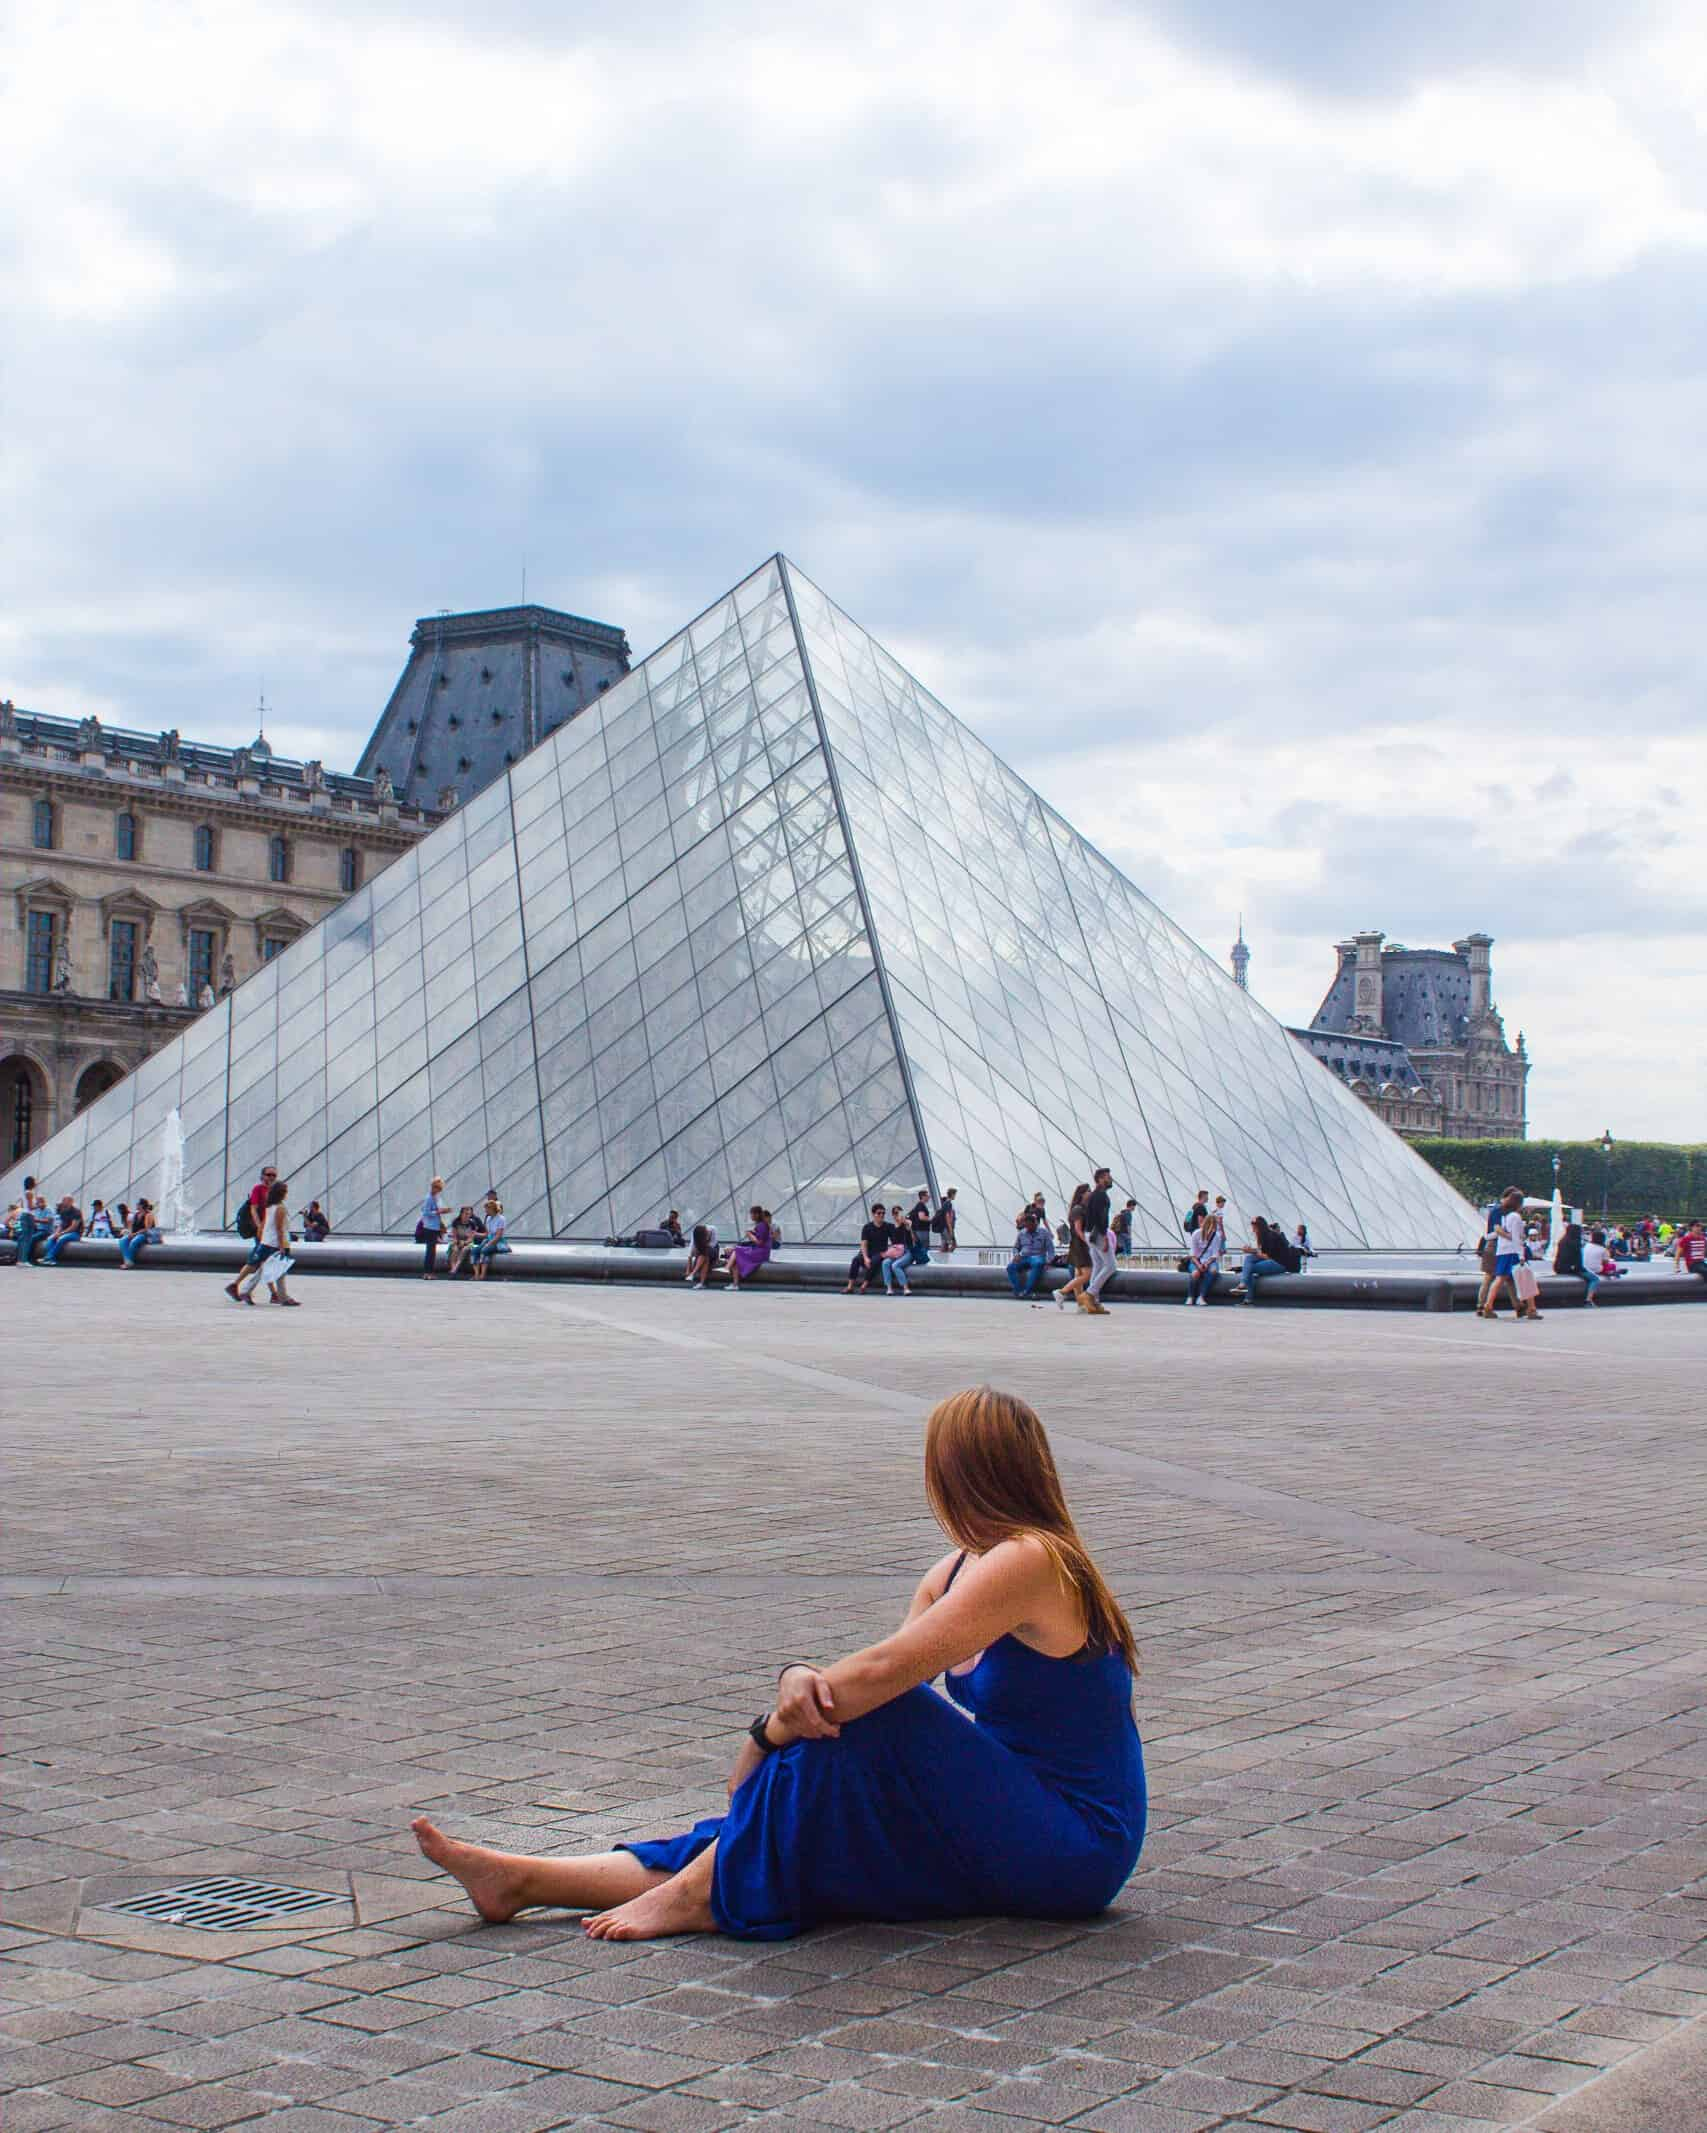 Explore the Louvre from home during Coronavirus